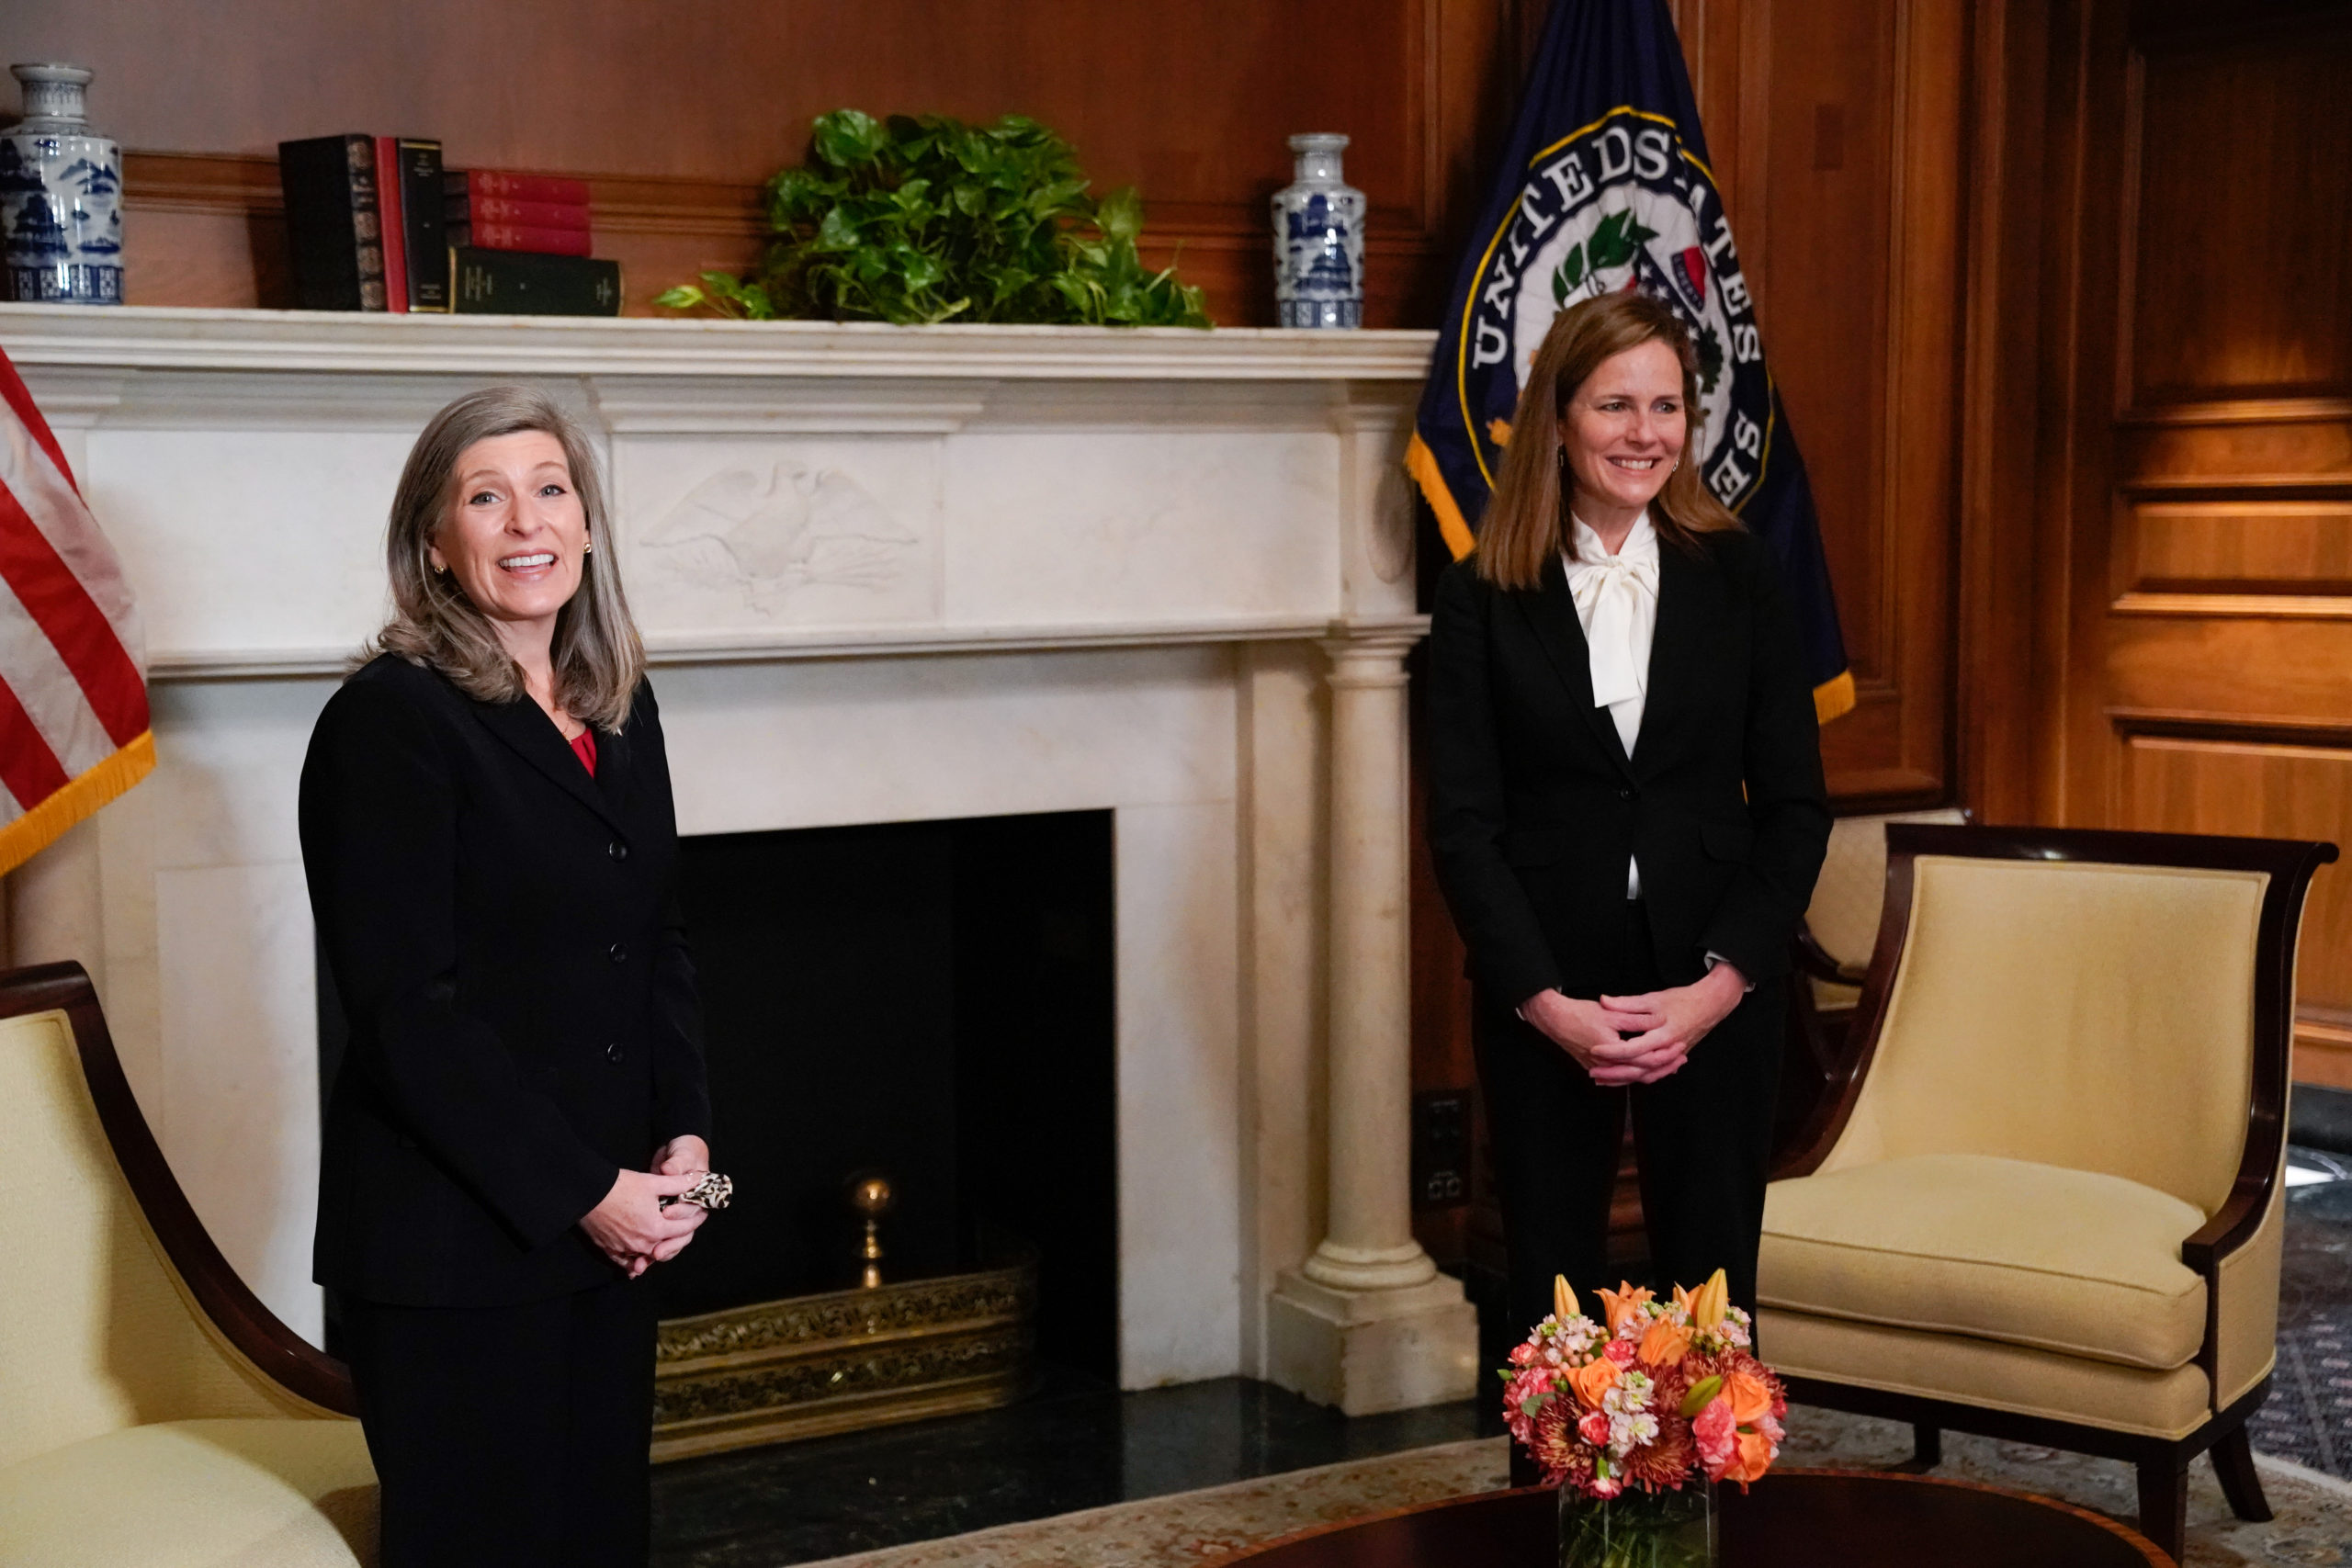 Sen. Joni Ernst (R-IA) meets with Seventh U.S. Circuit Court Judge Amy Coney Barrett, President Donald Trump's nominee for the U.S. Supreme Court, on Capitol Hill on October 1, 2020 in Washington, DC. (Erin Scott-Pool/Getty Images)